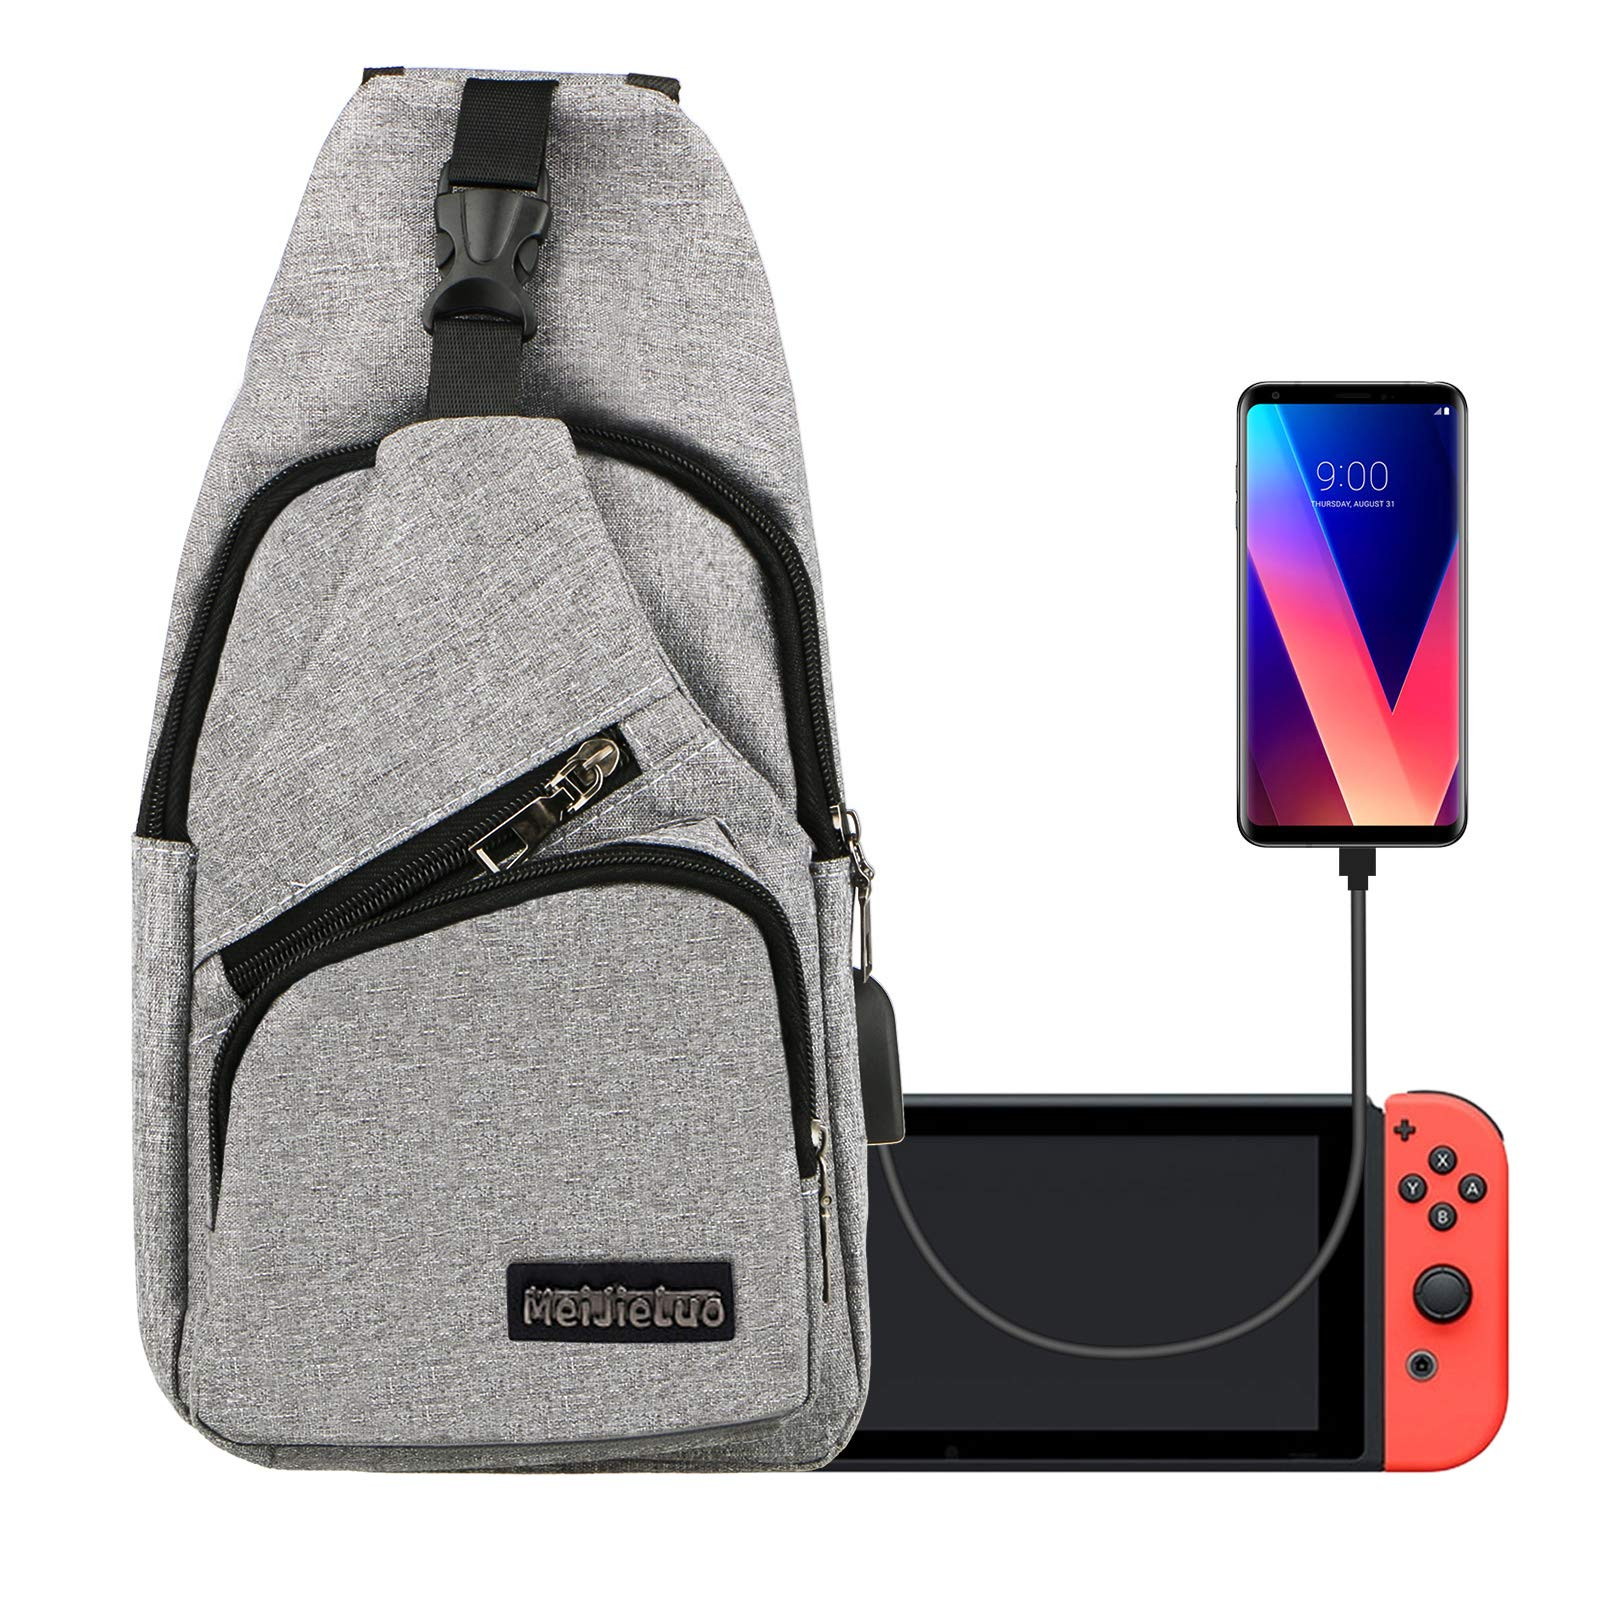 EEEKit Backpack Crossbody Travel Bag for Nintendo Switch Console Joy-Cons and Accessories, Charge Your Phone Via Side USB Charging Interface